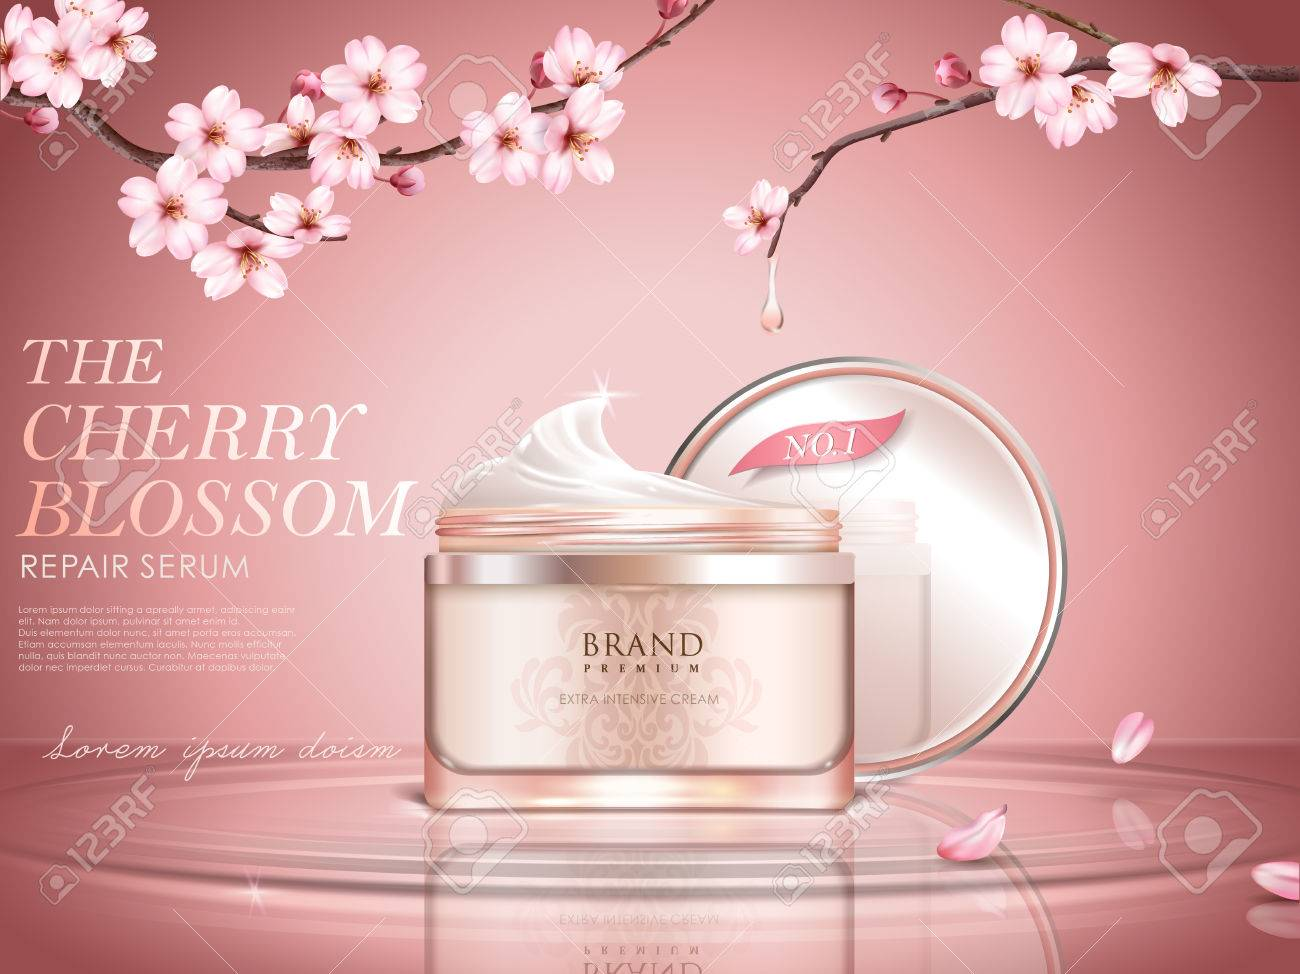 Graceful cherry blossom cosmetic ad, cream bottle upon water surface, sakura branches with dripped water in 3d illustration - 82759154